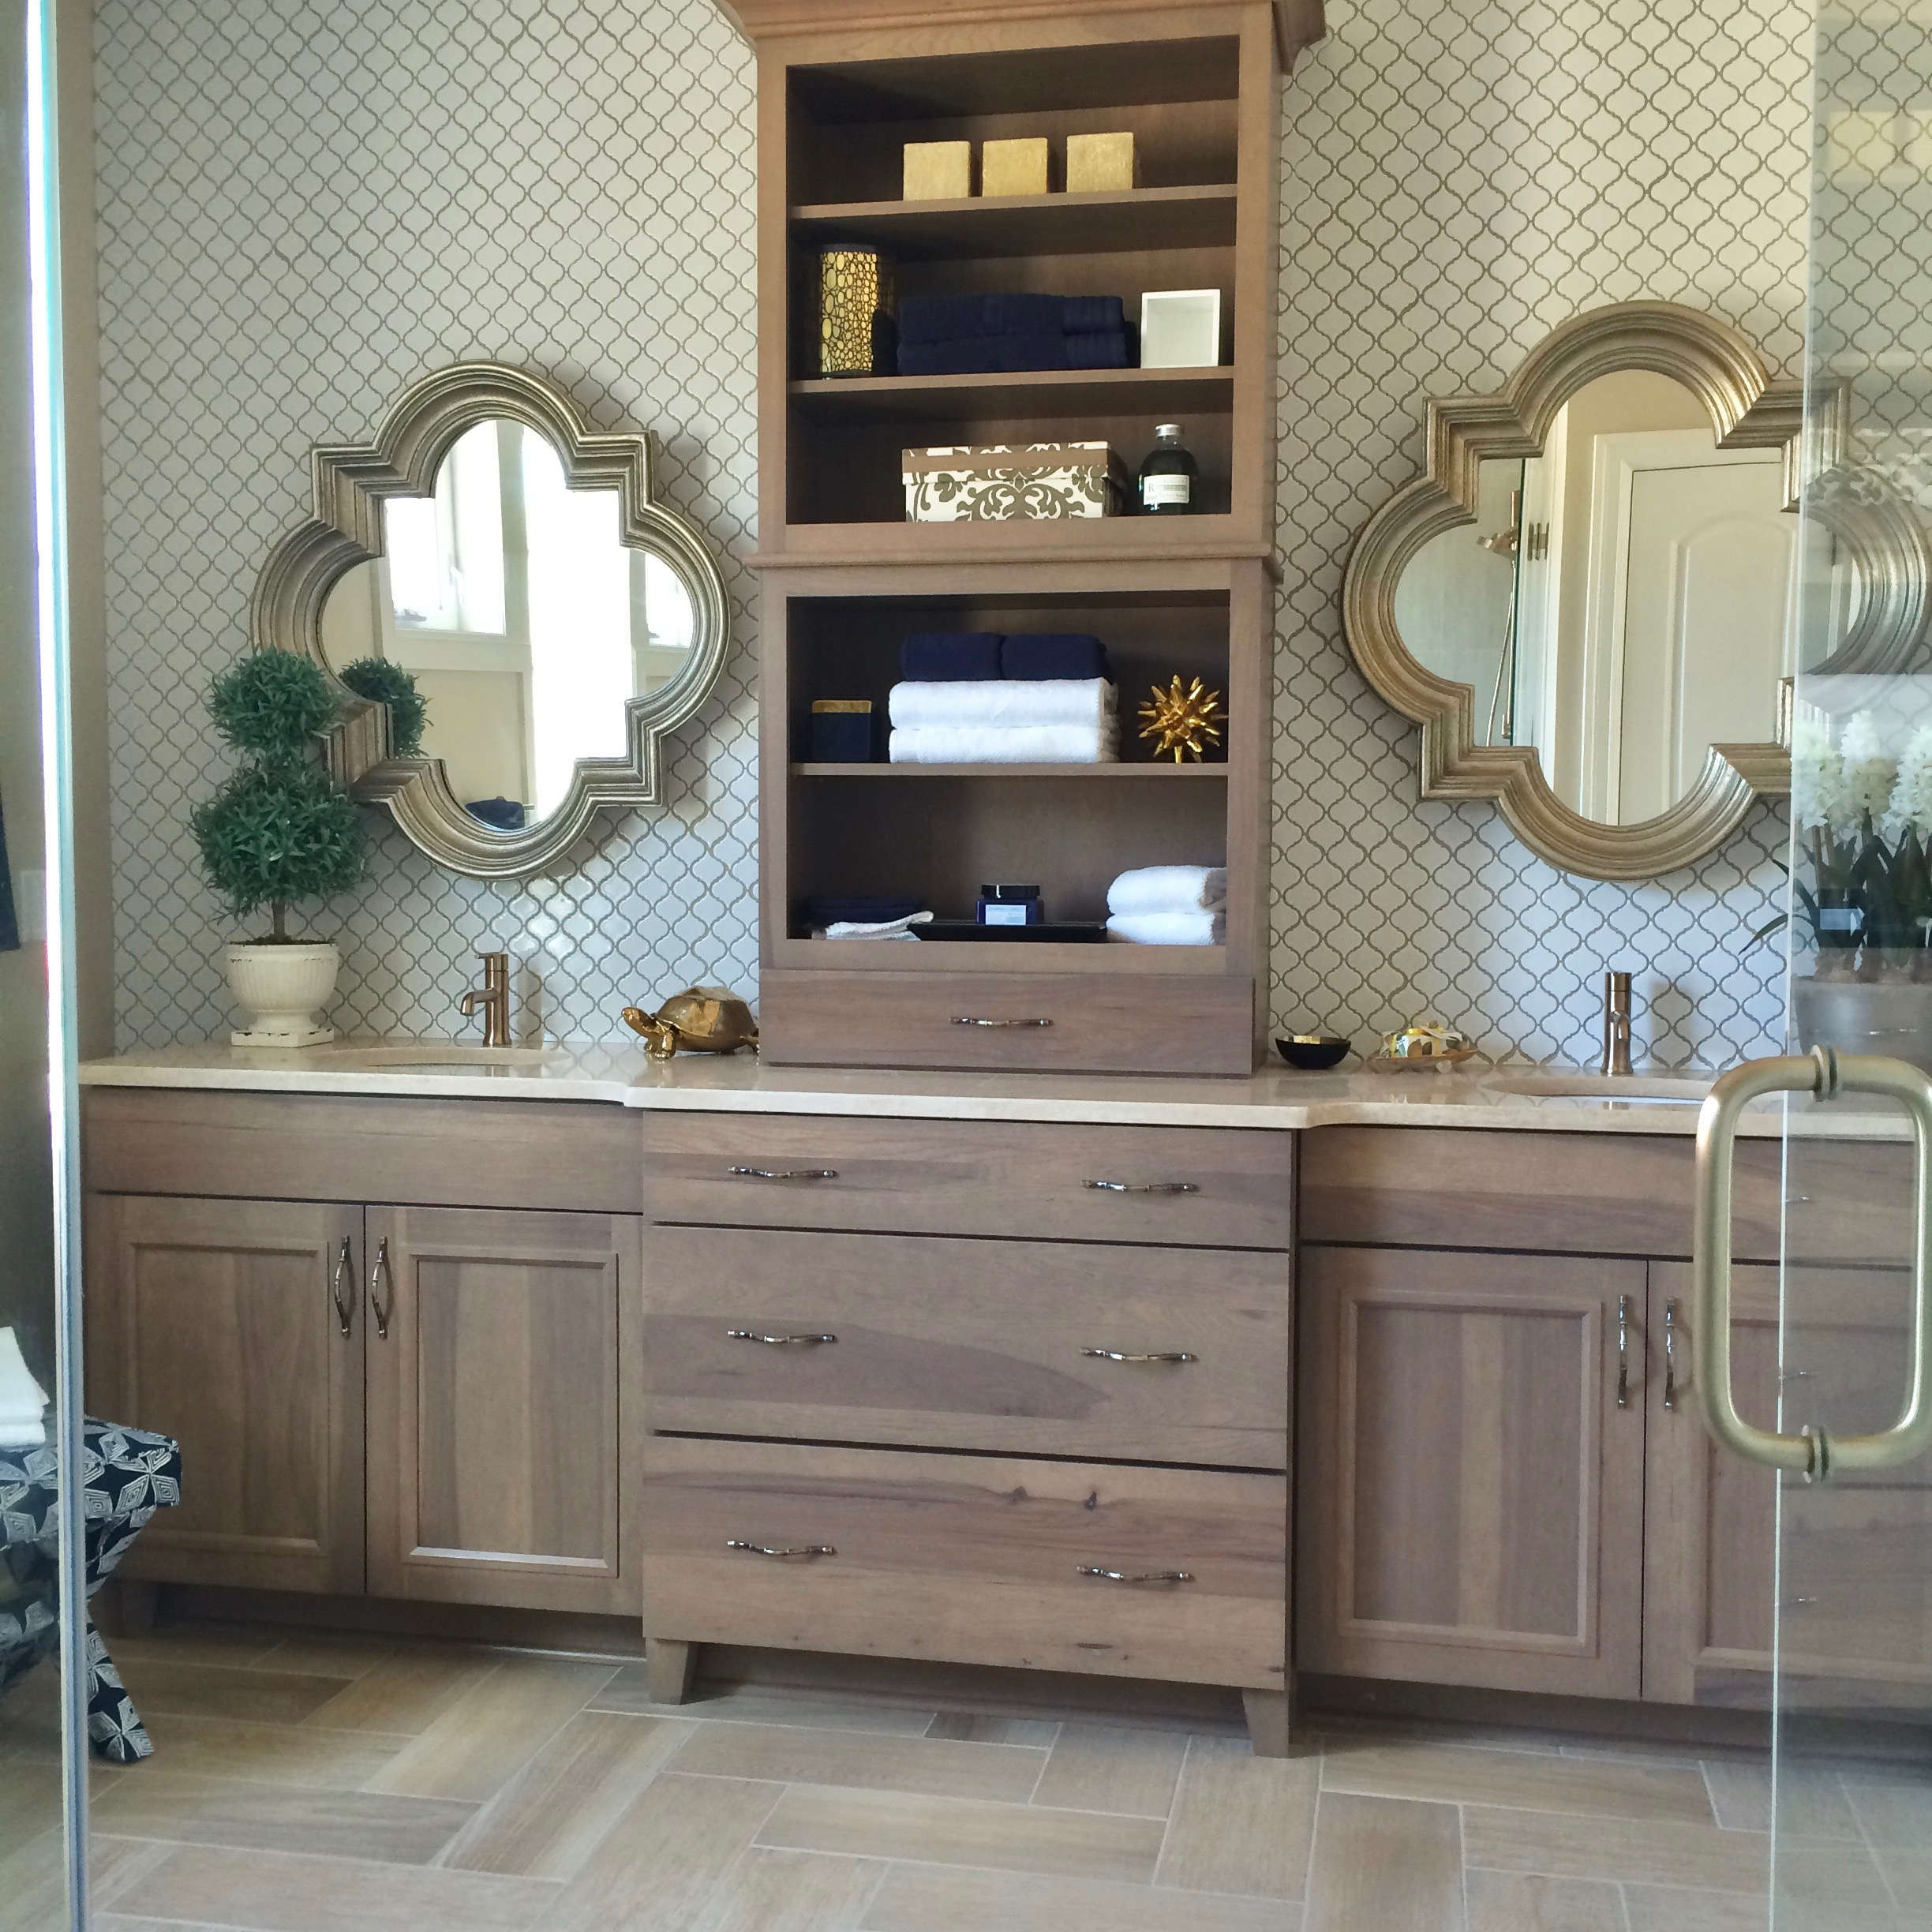 amazing-bathrooms-luxurious-bathroom-tile-vanity-Wilshire-Hill-Pittsford-NY-gorgeous-quatrefoil-mirror-gold-brushed-moroccan